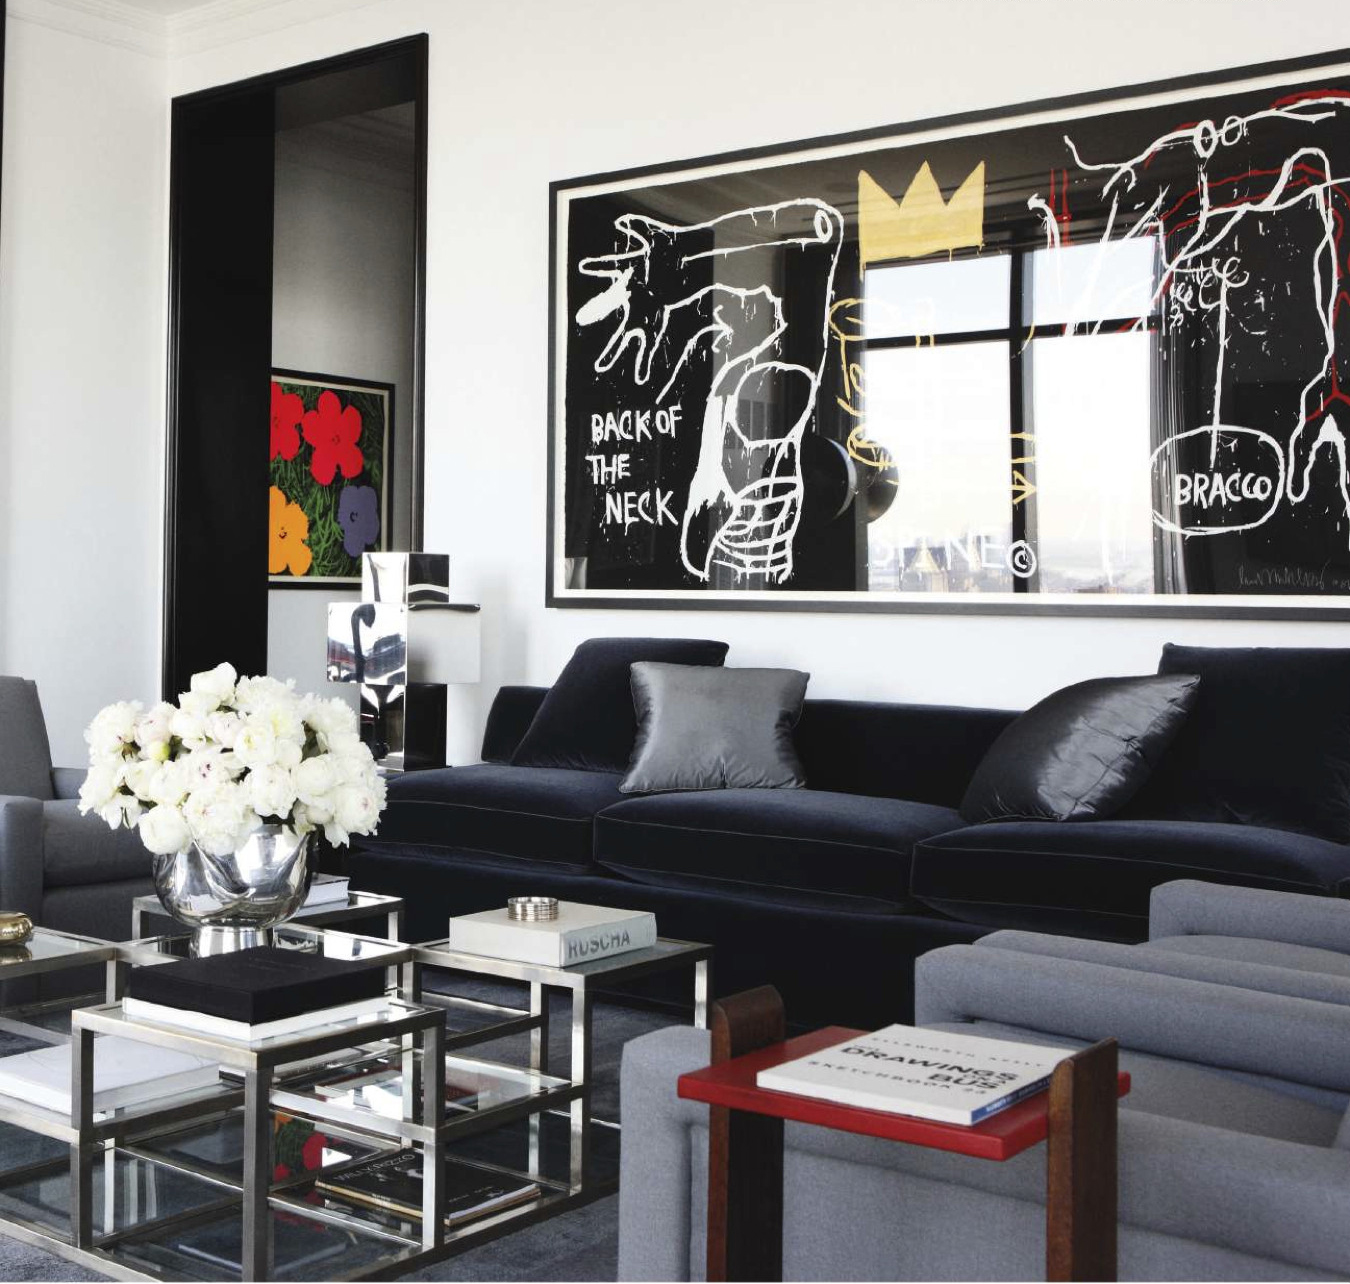 manhattan interiors drew aaron and hana soukupova s manhattan apartment Inside Hana Soukupovau0027s Luxurious Manhattan Apartment